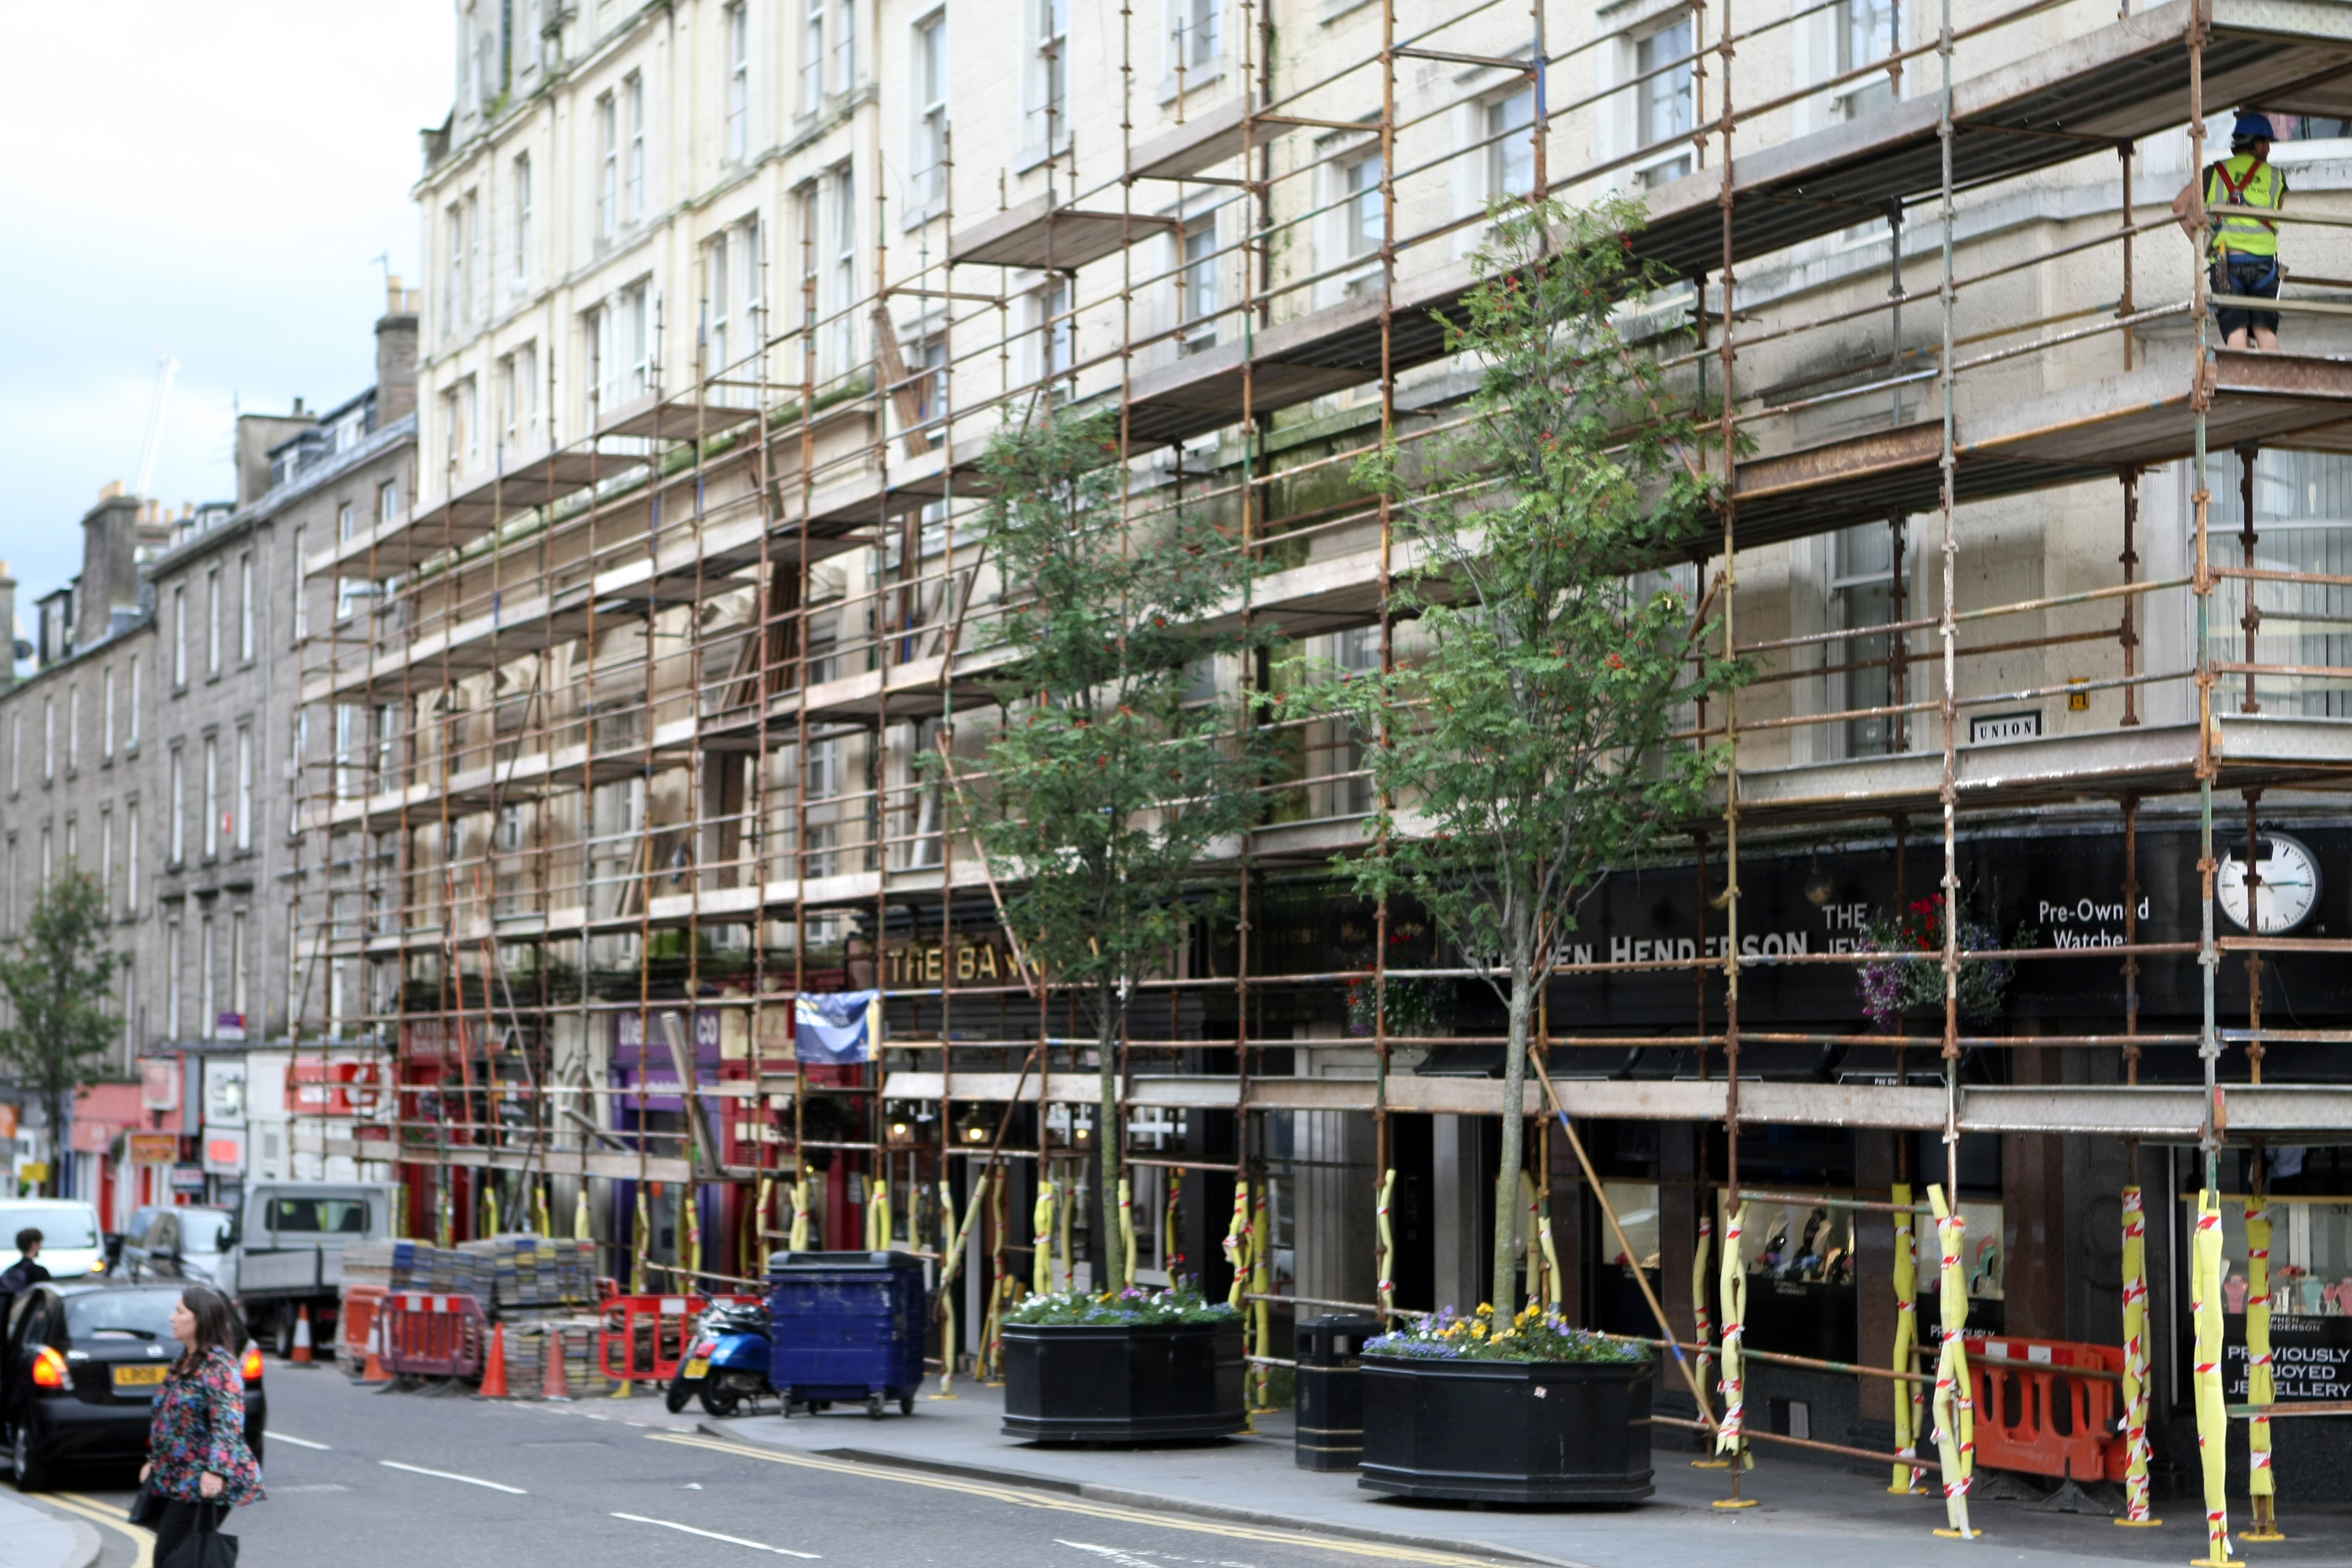 Businesses in Union Street, Dundee have been left angry after scaffolding was erected outside properties without any warning